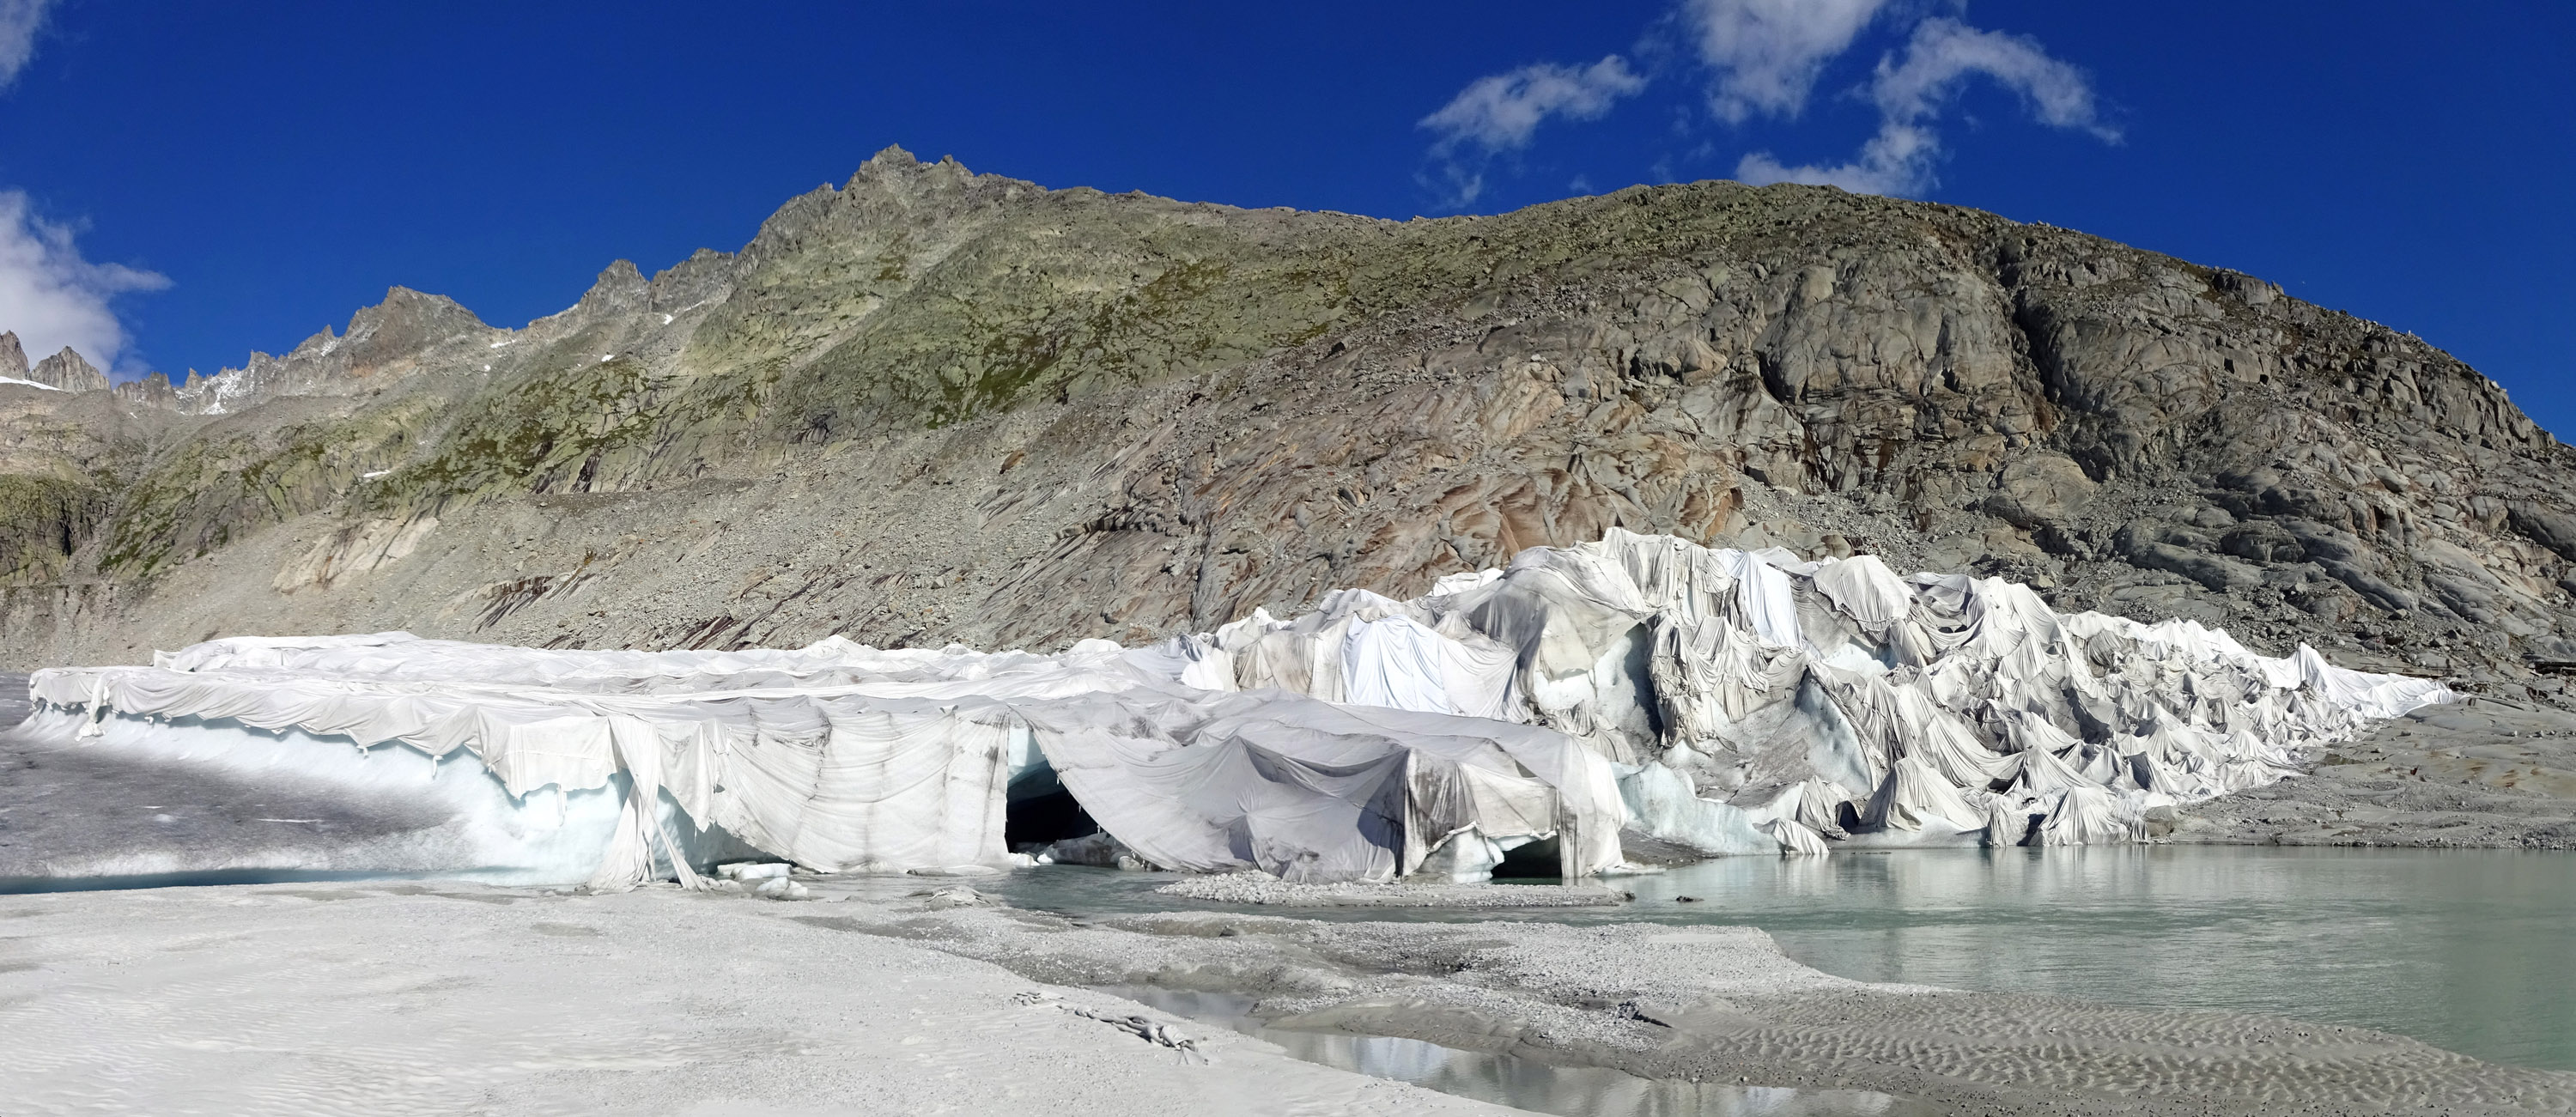 A glacier sits in front of a mountain side. The part of the glacier in the frame is covered by geotextile fabrics.